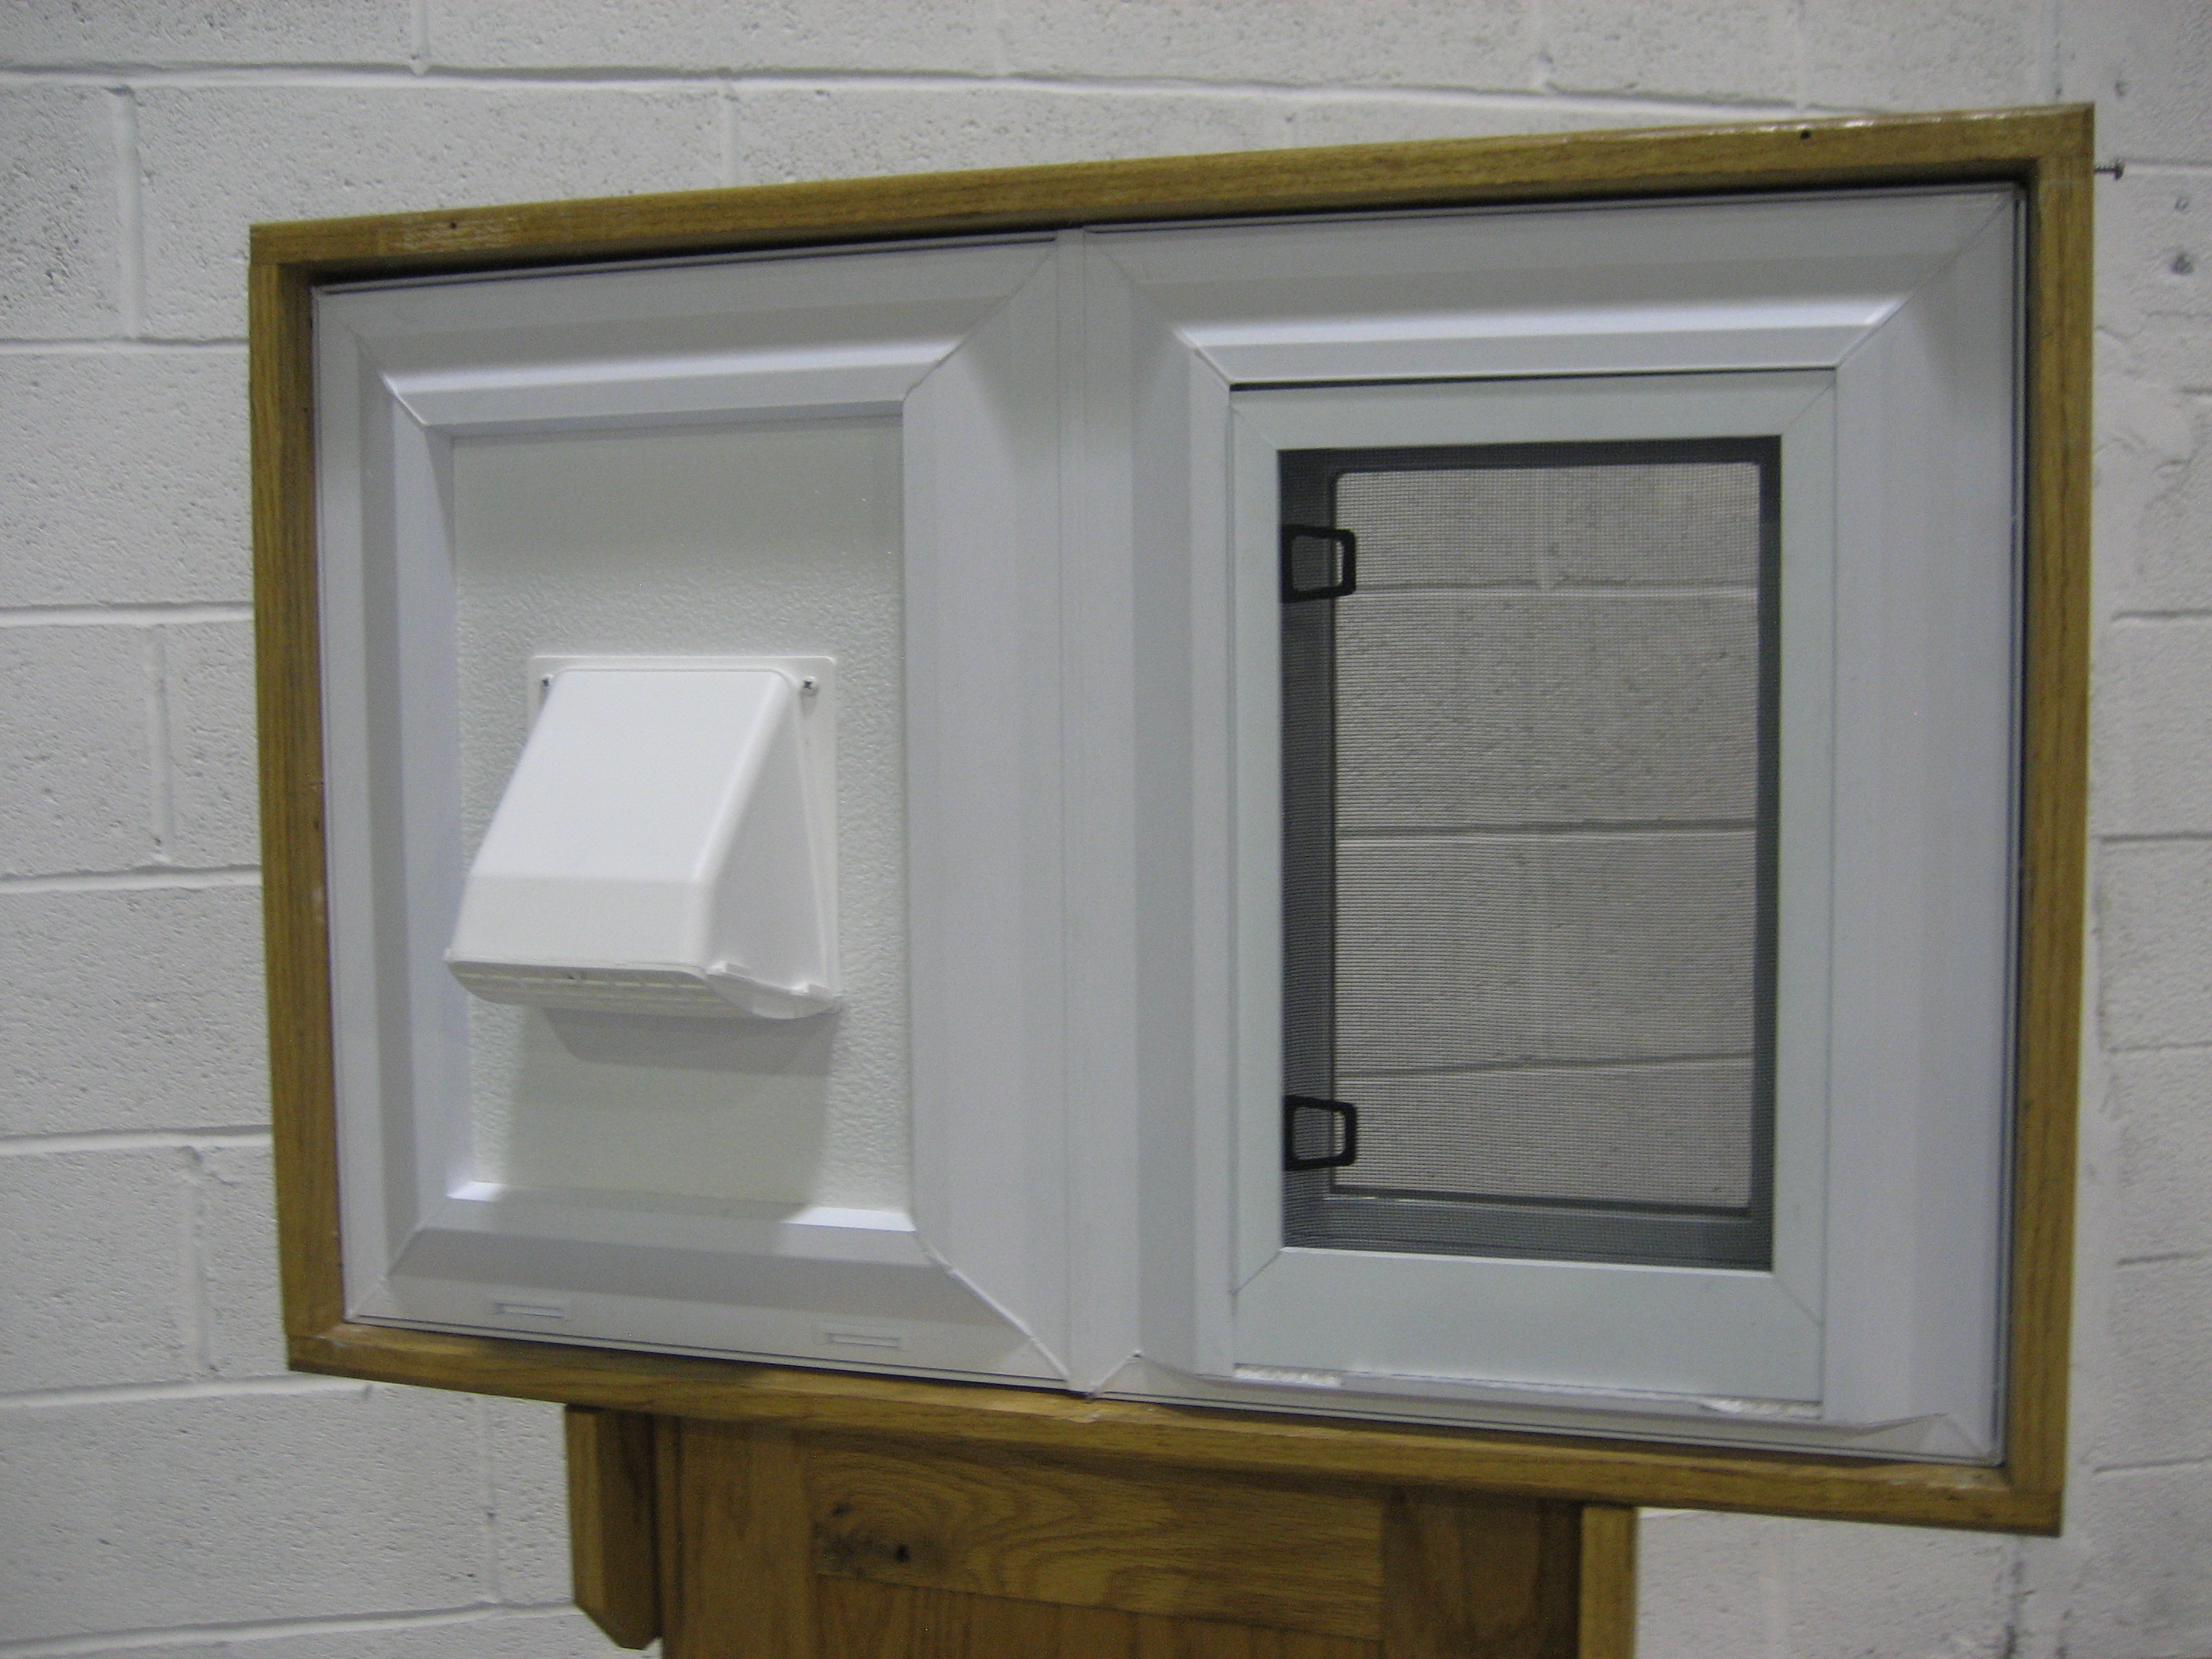 Replacement windows replacement window with dryer vent for Basement window replacement